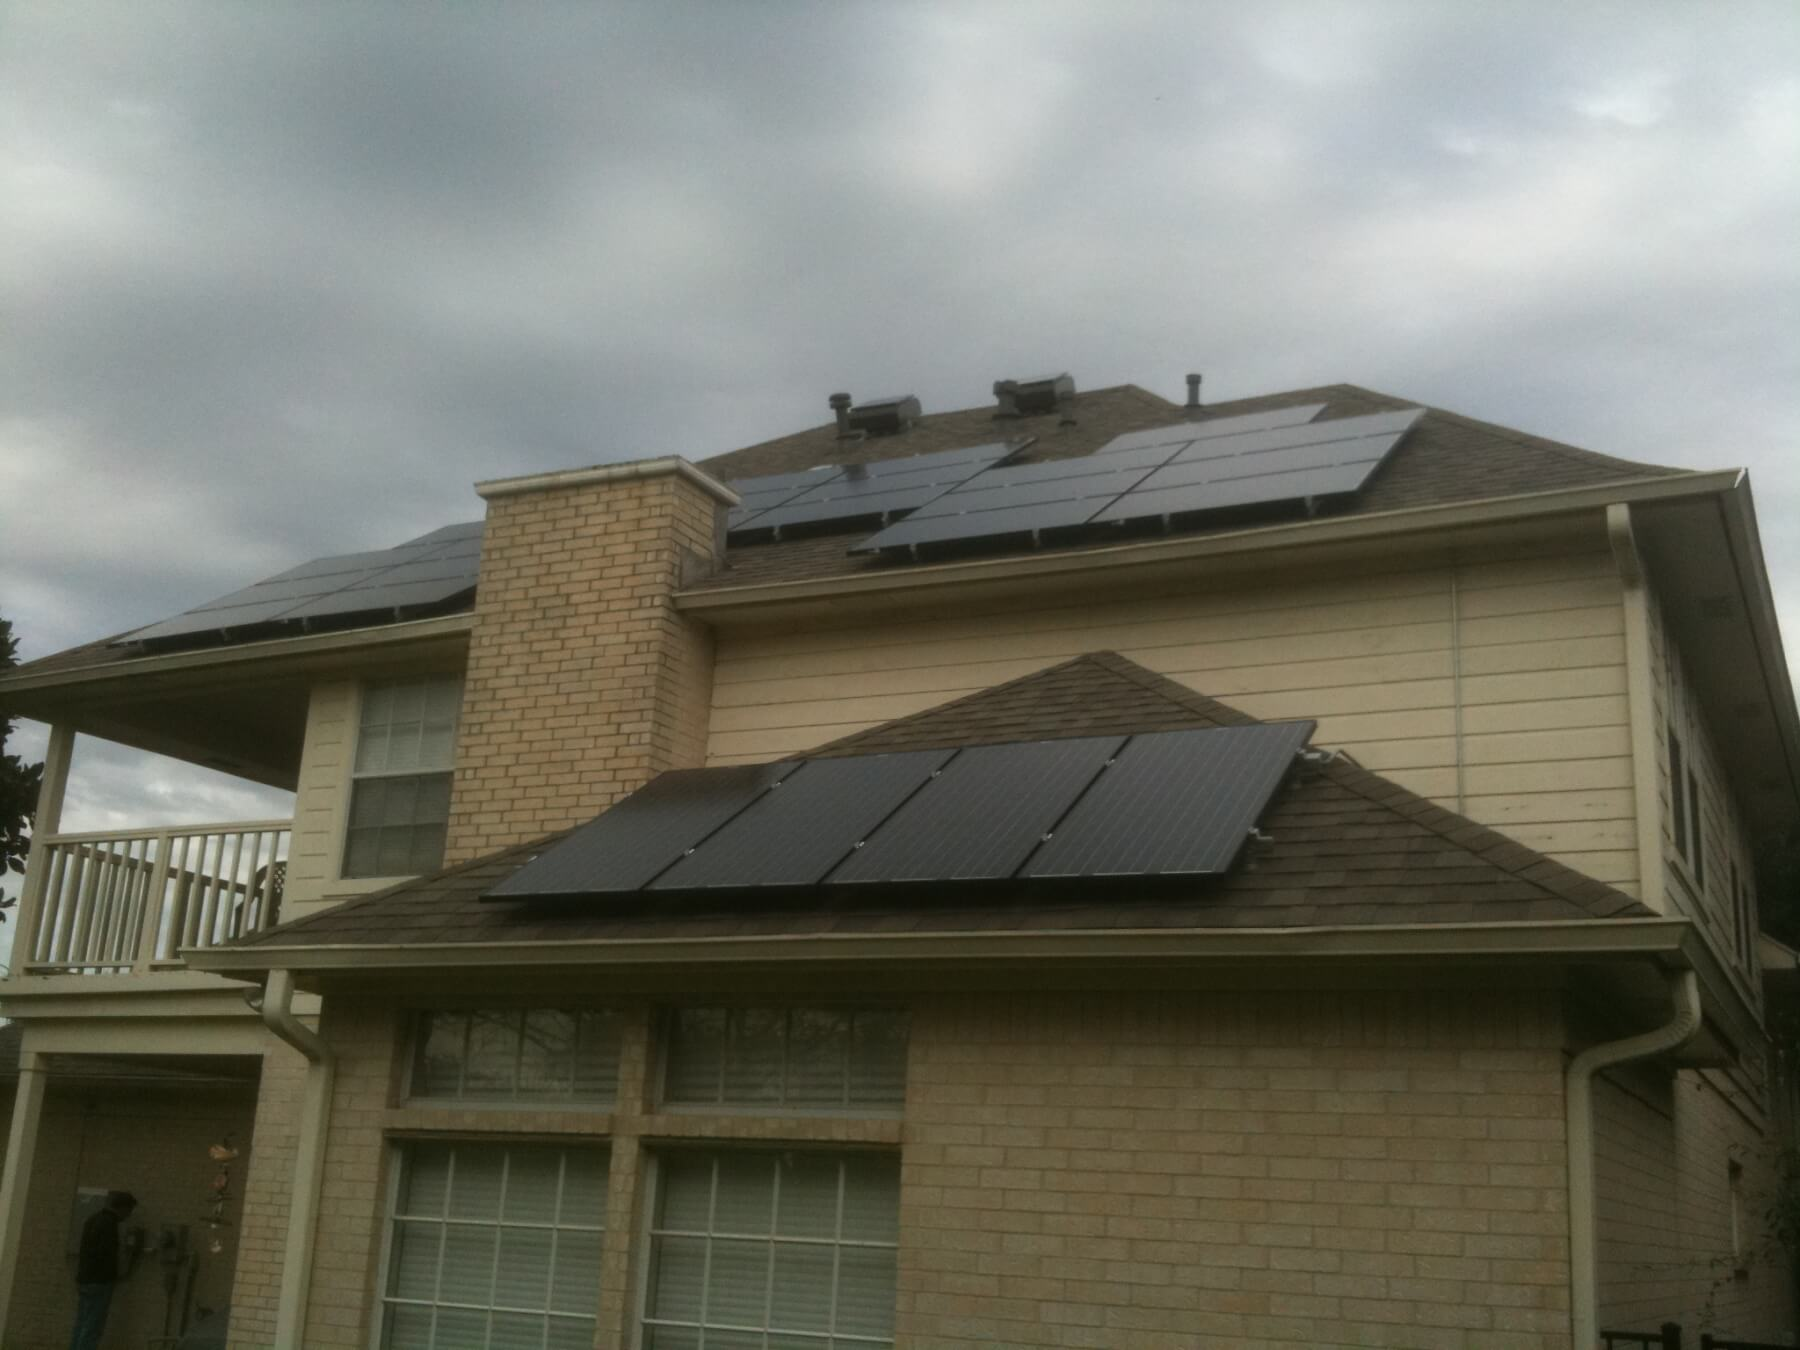 House roof with solar panels under cloudy and gloomy sky